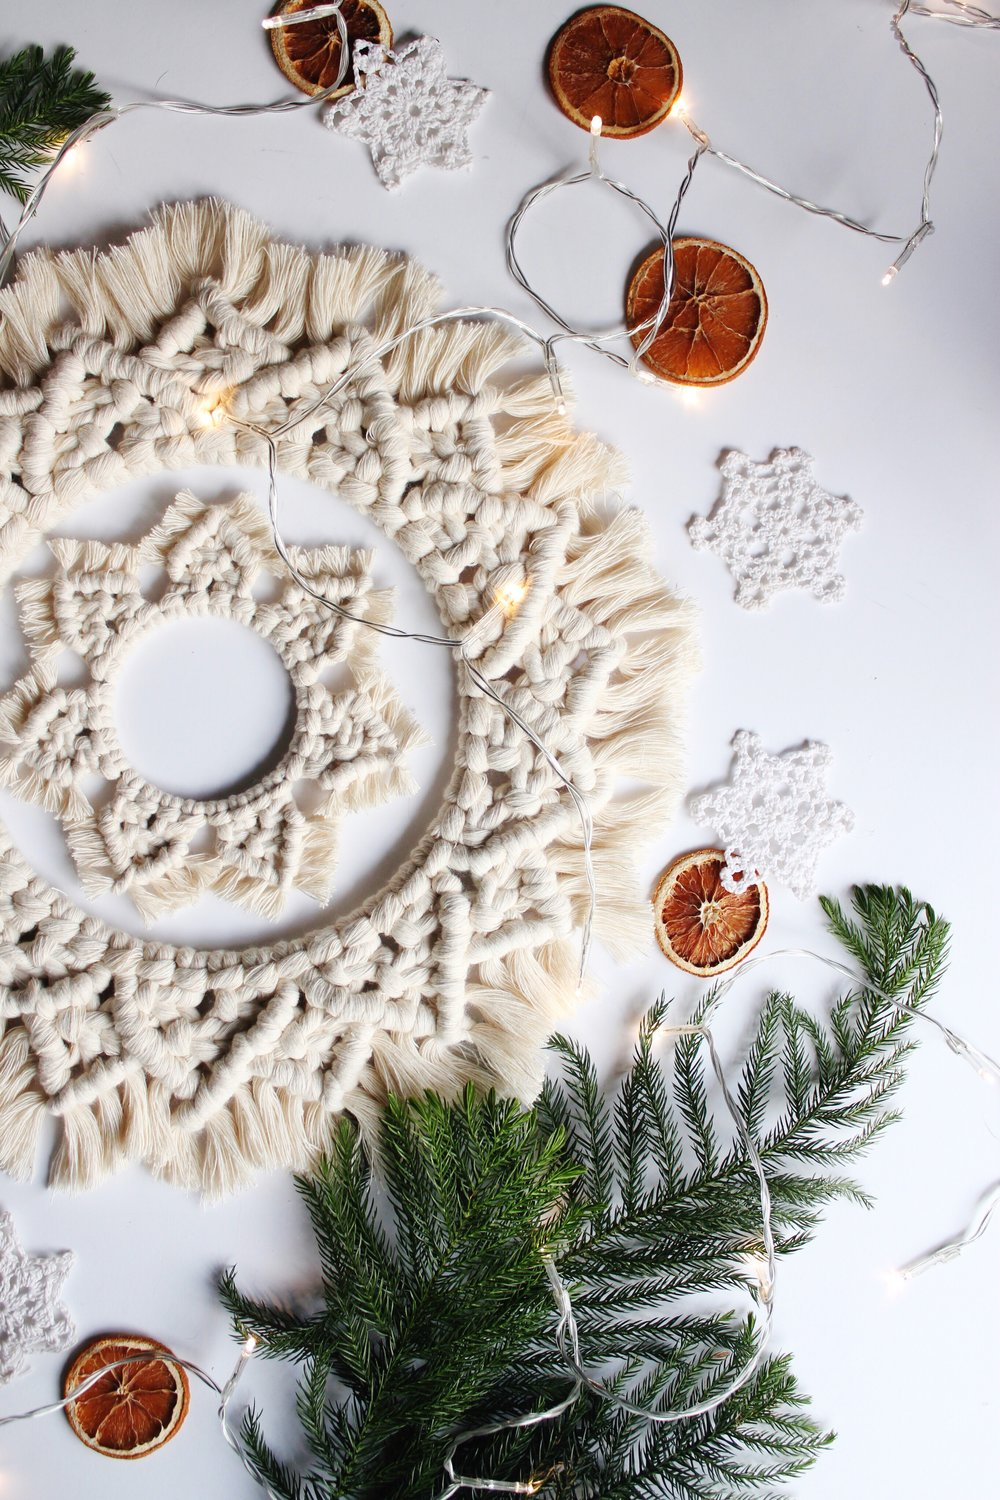 REJOICE - The wreaths in this collection offer a minimalist beauty that won't compete for visual balance. But they are striking enough to hold their own in any vignette. I think they look just as gorgeous against a crisp white wall as they do on deeply colored front door.